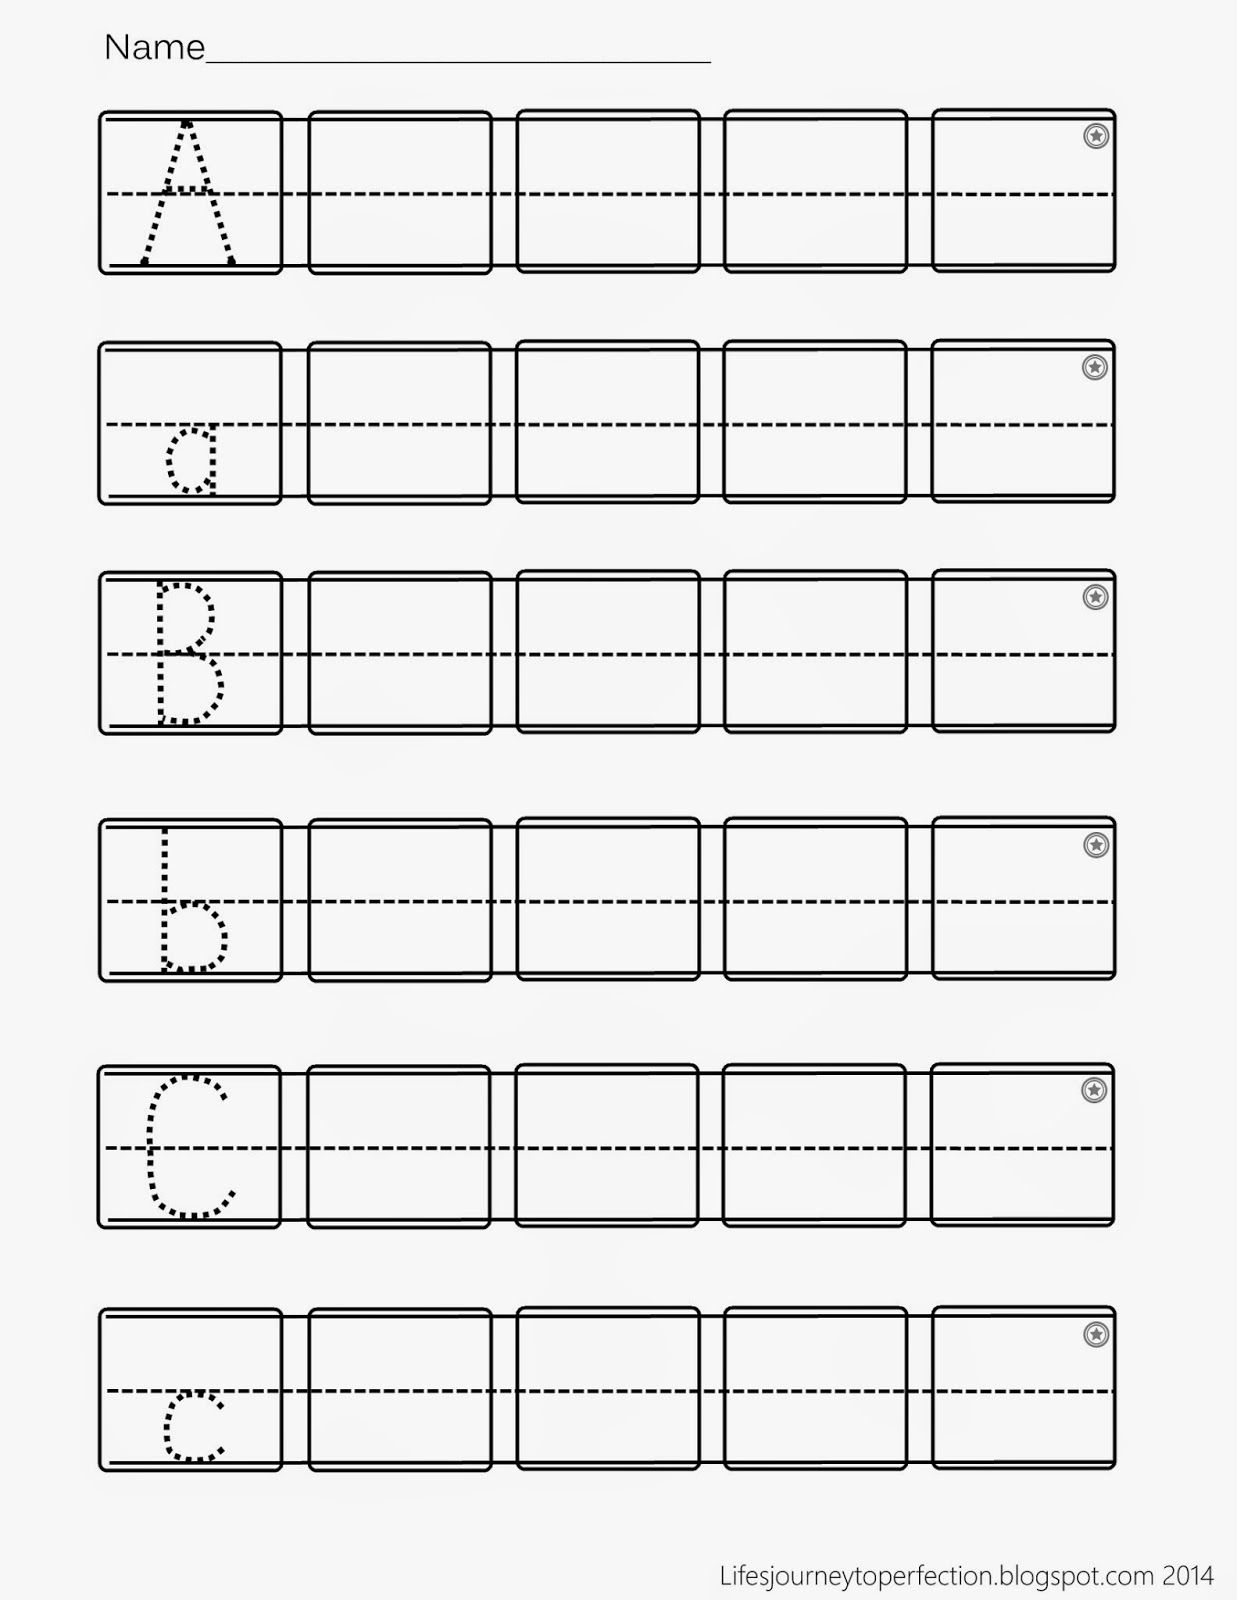 worksheet Abc Handwriting Worksheets alphabet writing paper brains worksheet practice letters kindergarten mikyu free worksheet